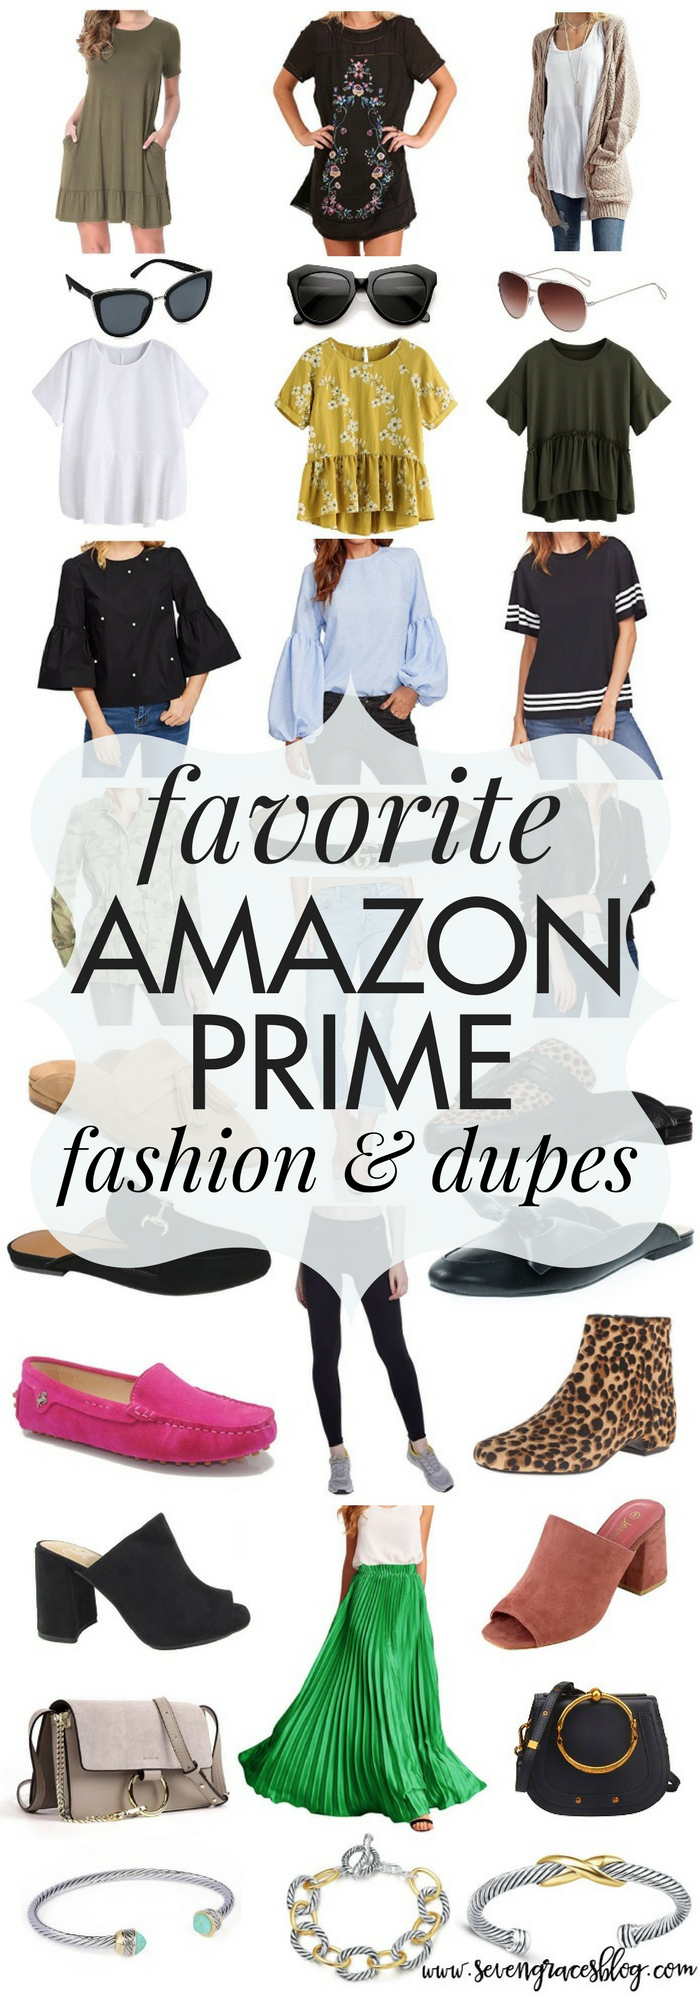 The ultimate Amazon Prime fashion picks for your closet. The best pieces to add to your closet from Amazon and the best dupes you can find! You don't want to miss this!